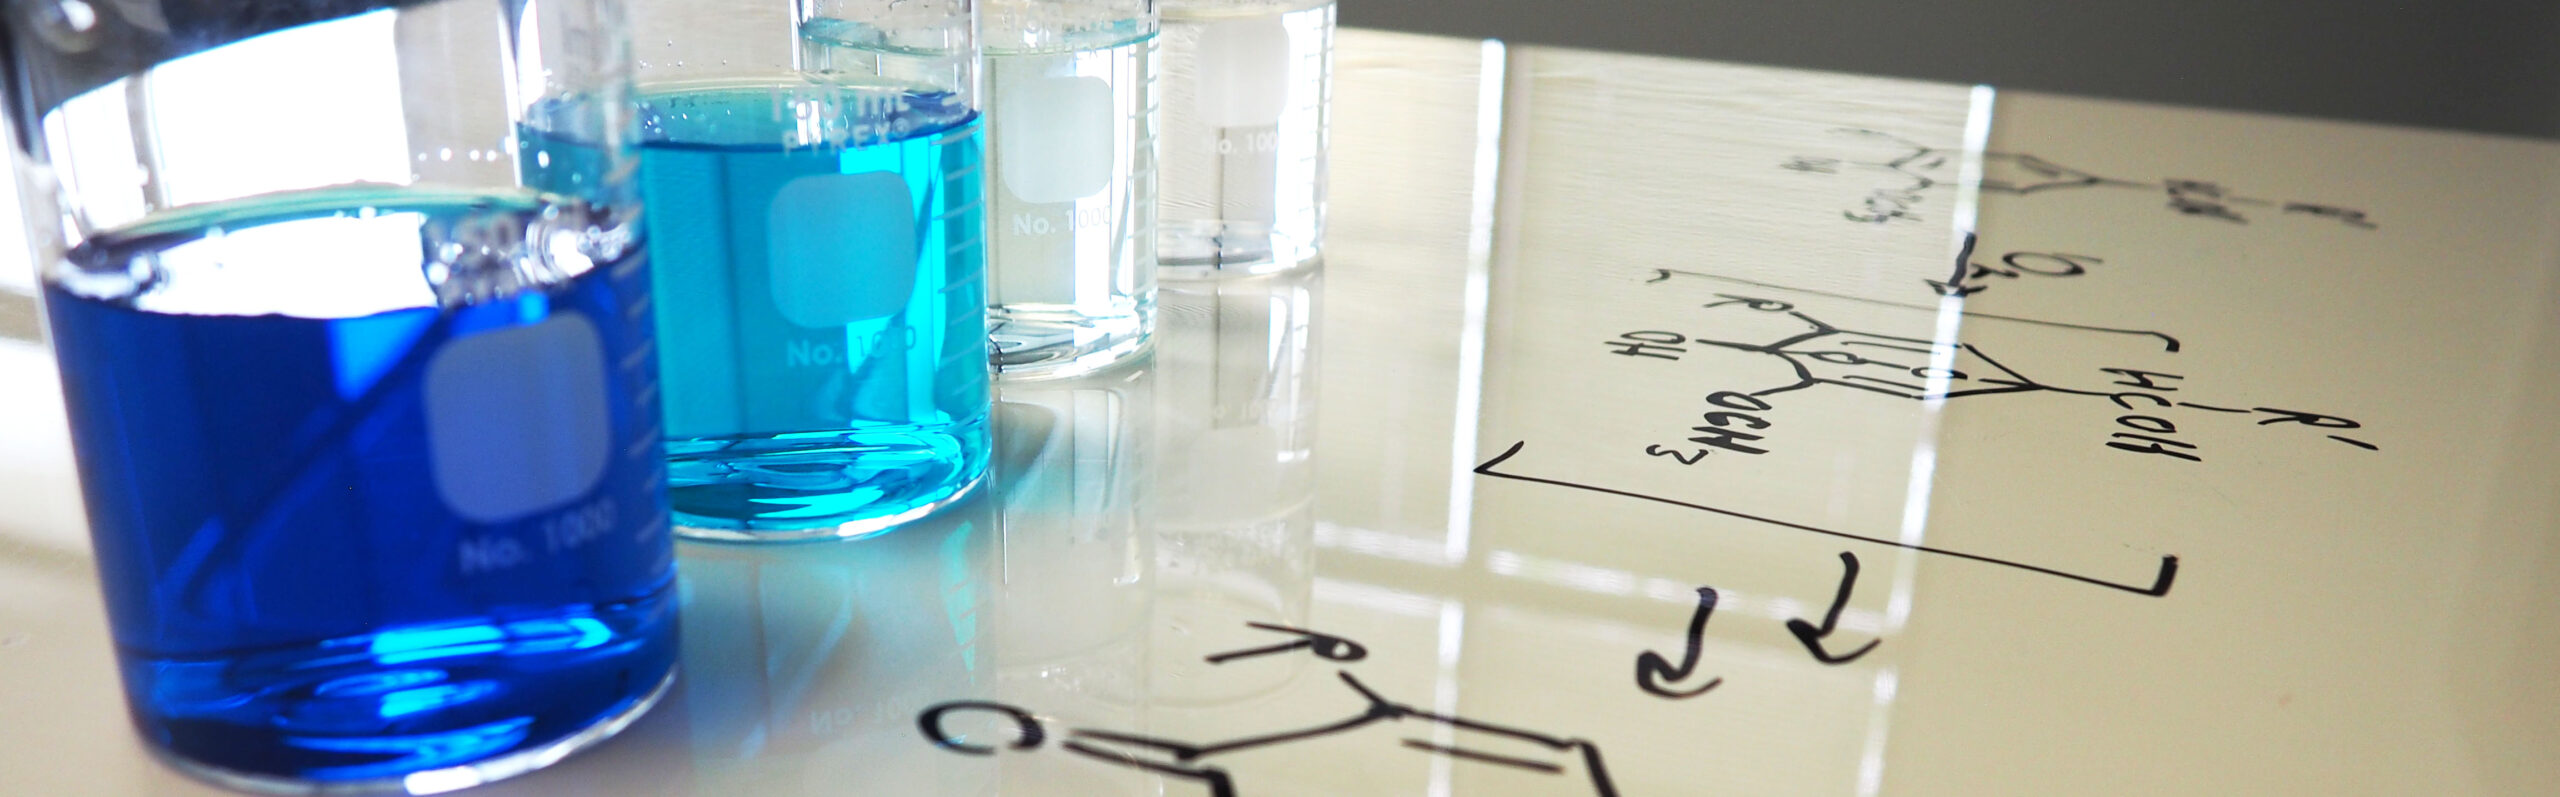 Jars from blue to clear represent PeroxyMAX oxidant technology. A chemical equation is seen in the foreground